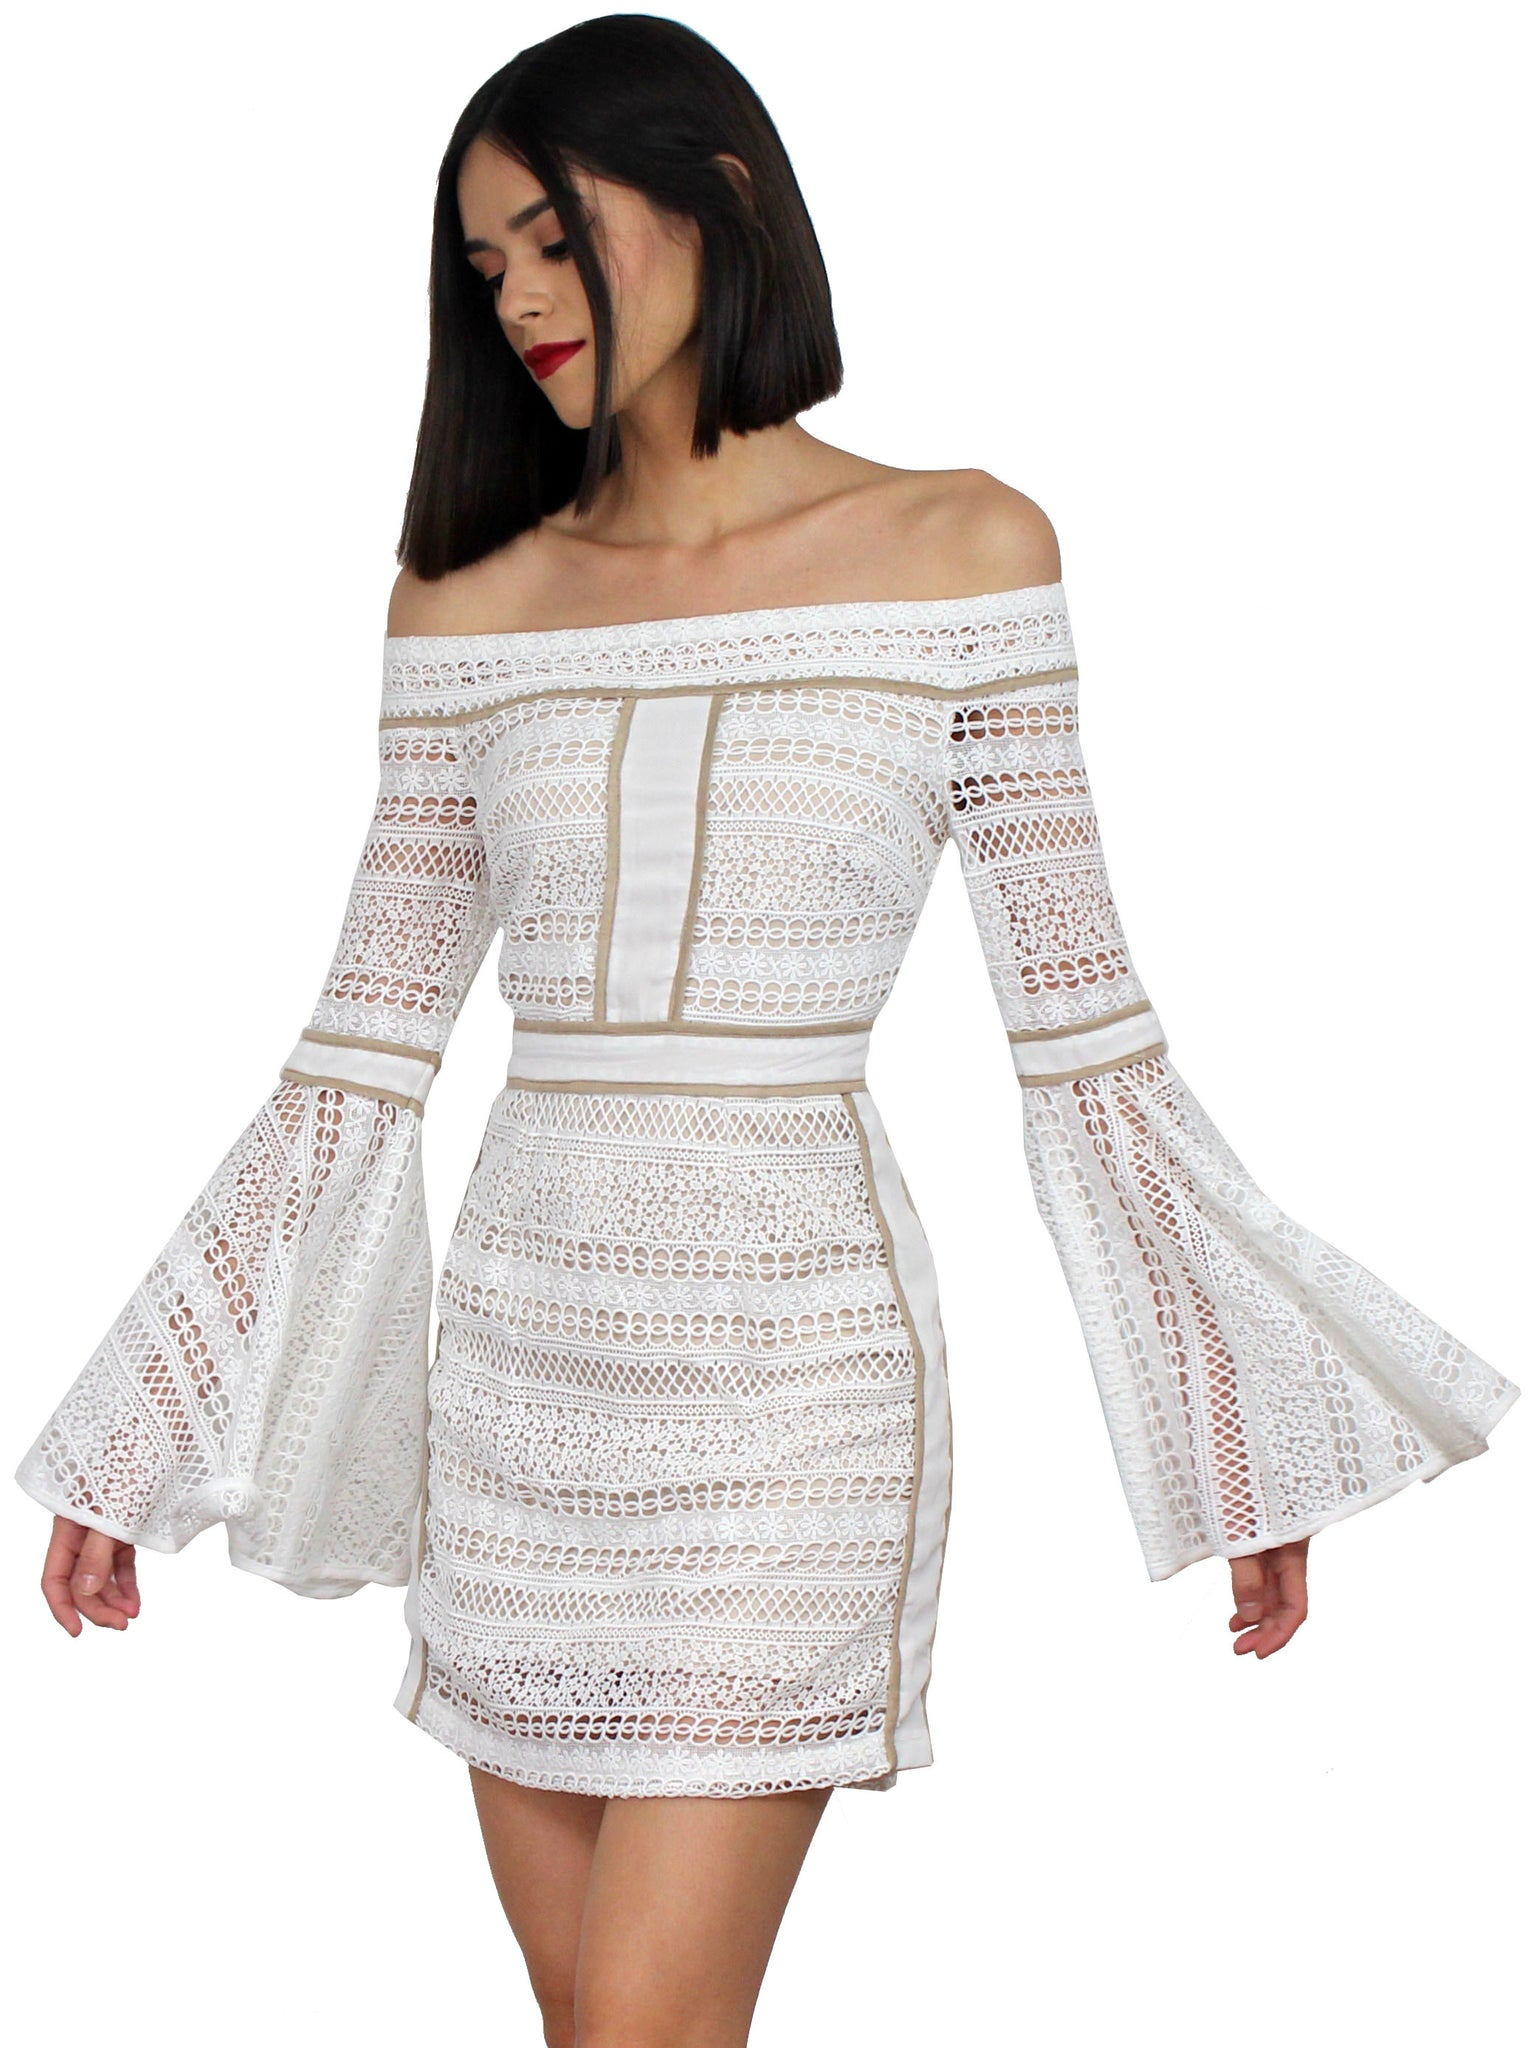 Yes to the Lace White Off Shoulder Dress